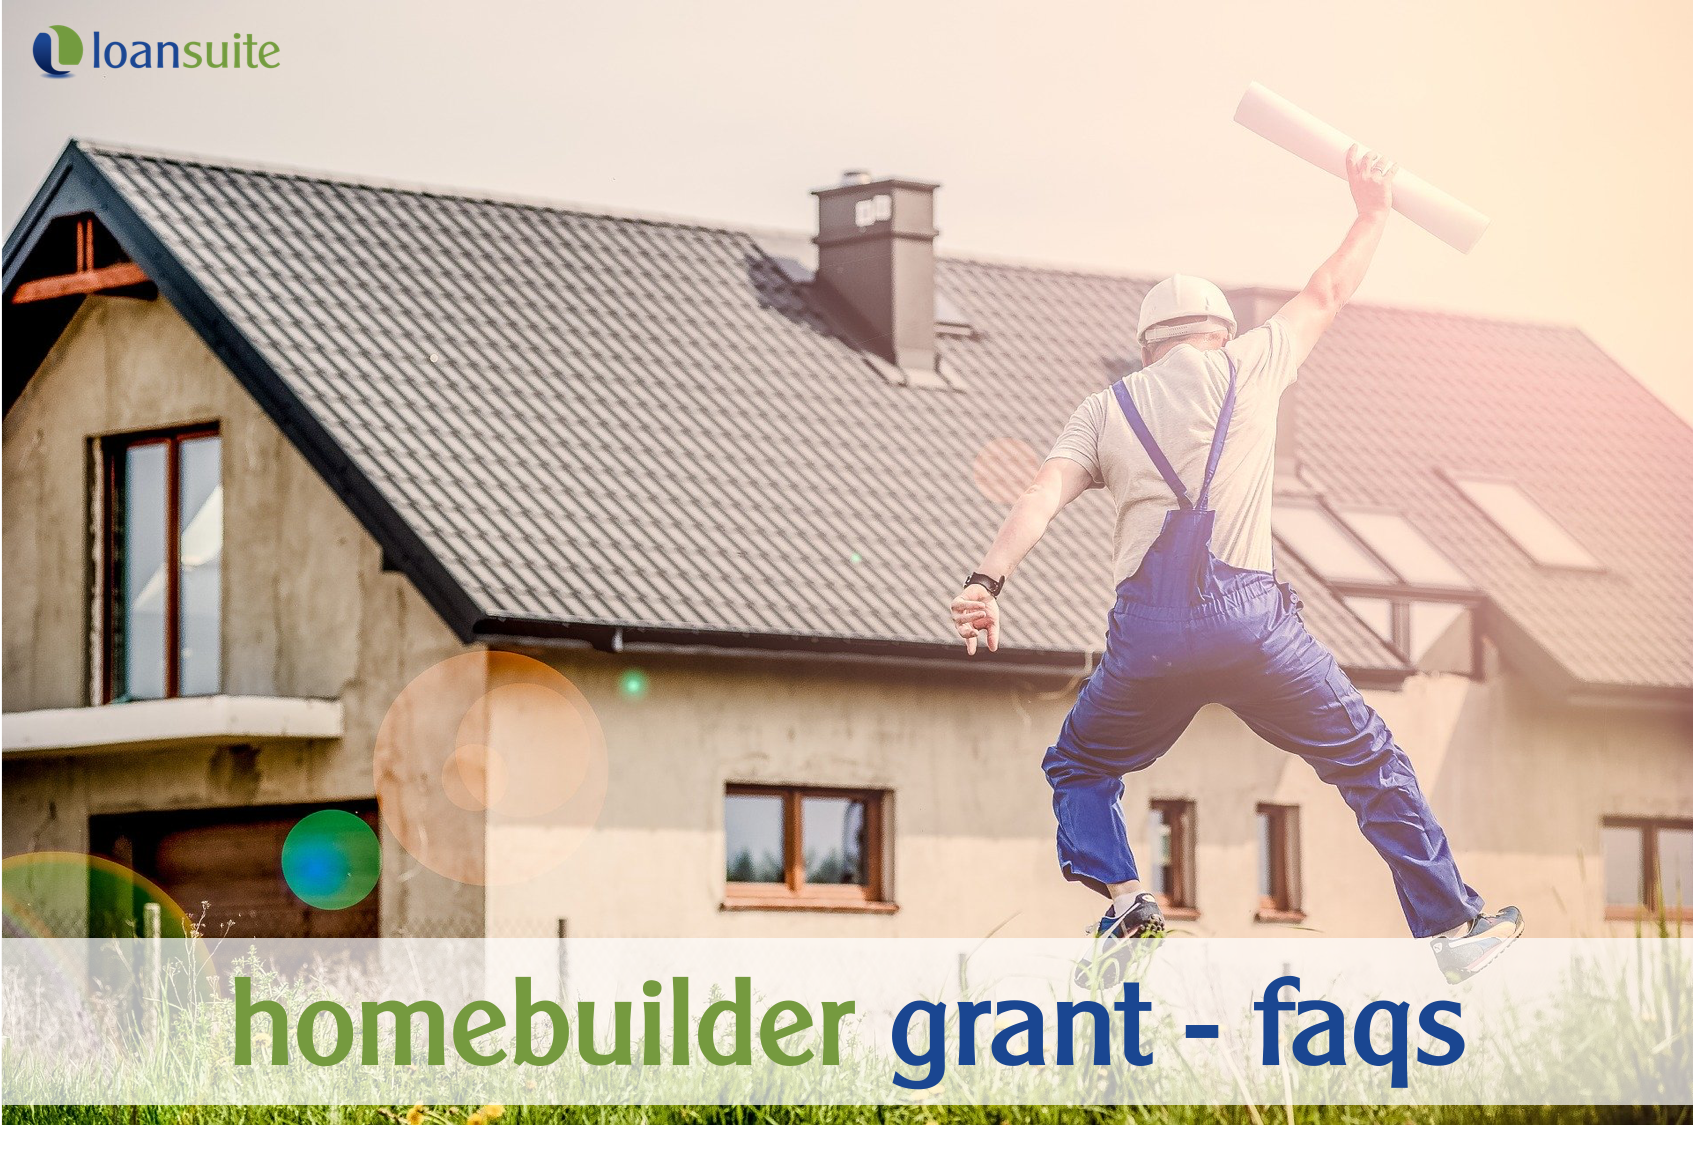 HomeBuilder Scheme FAQs - Loansuite - Mortgage Brokers